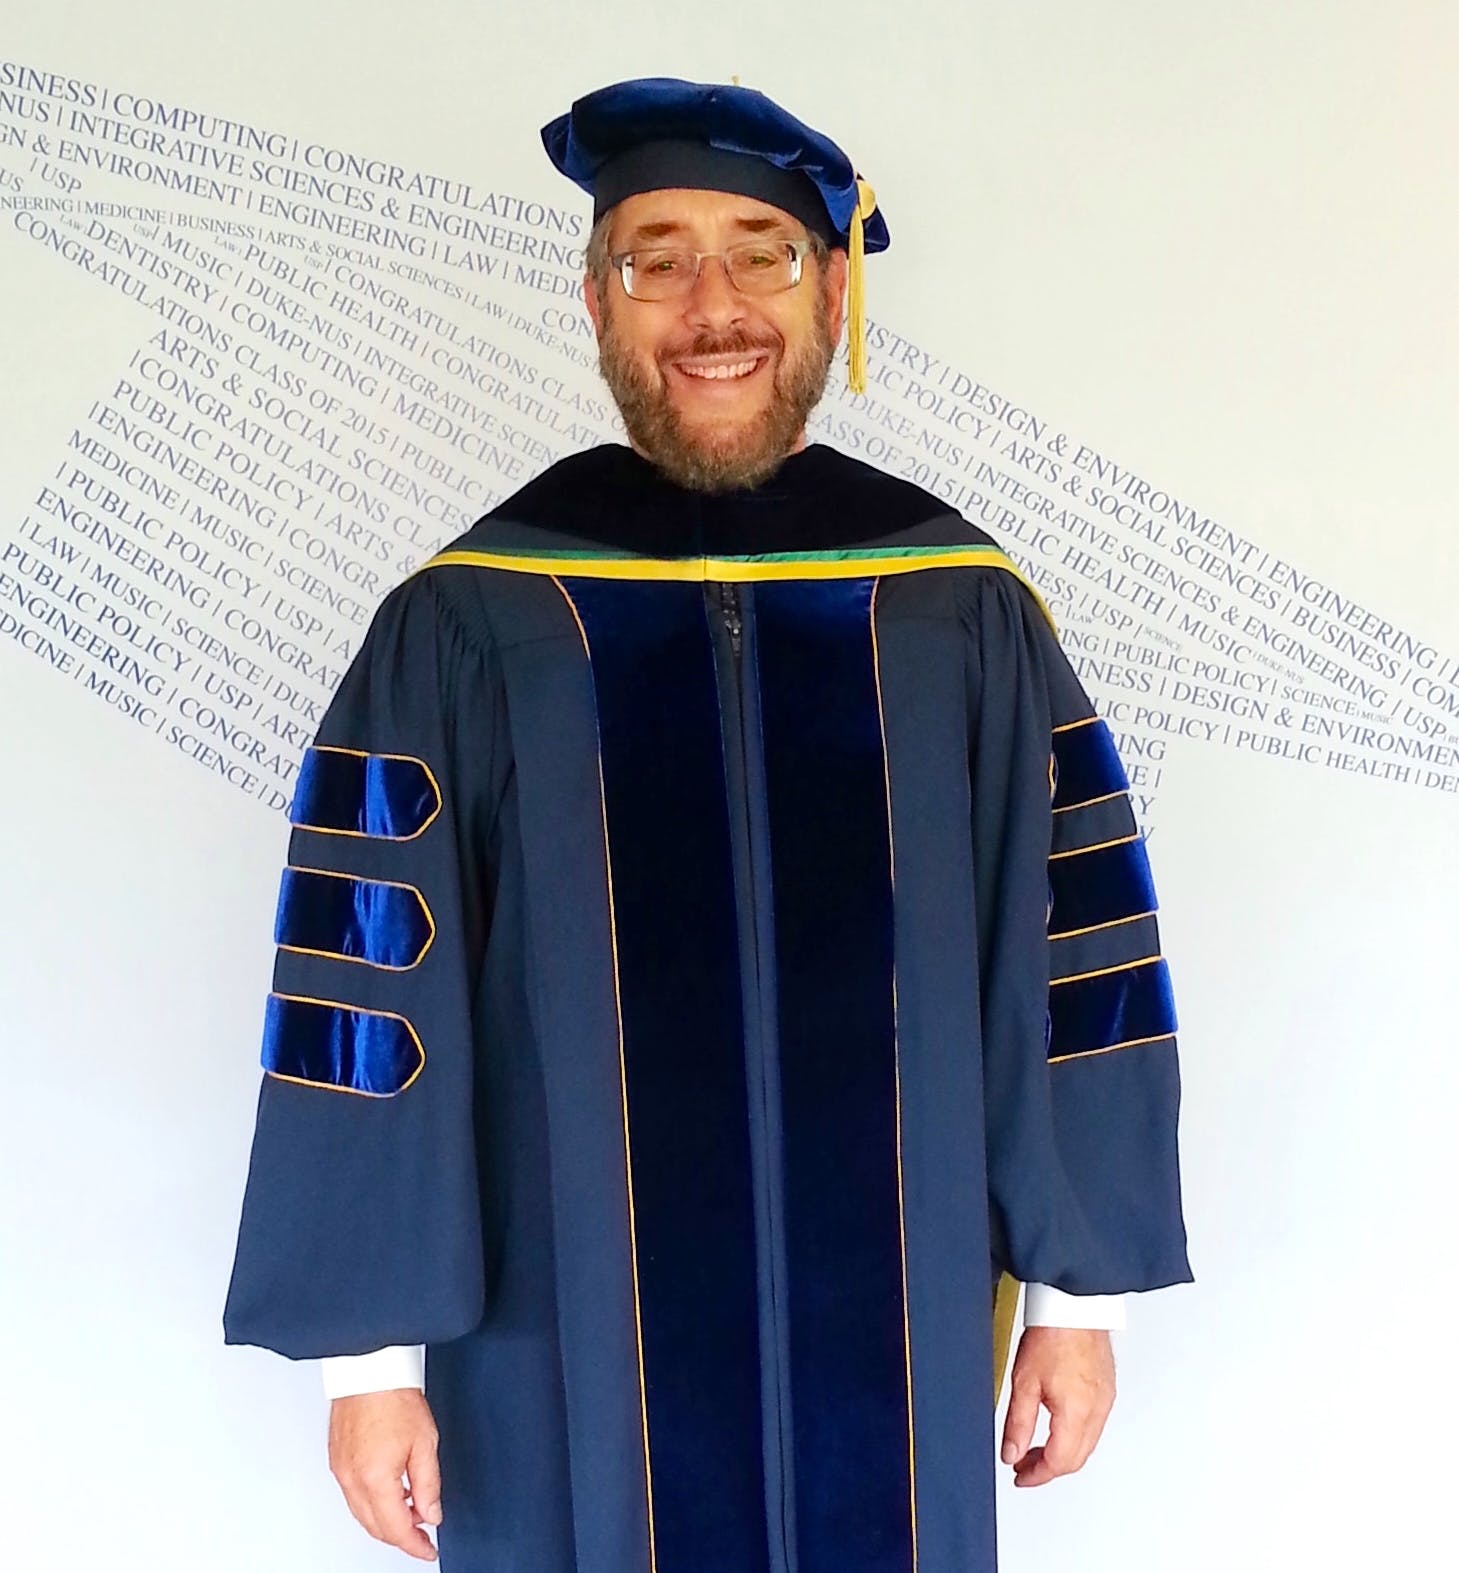 University of California PhD Regalia Set – PhinisheD Gown